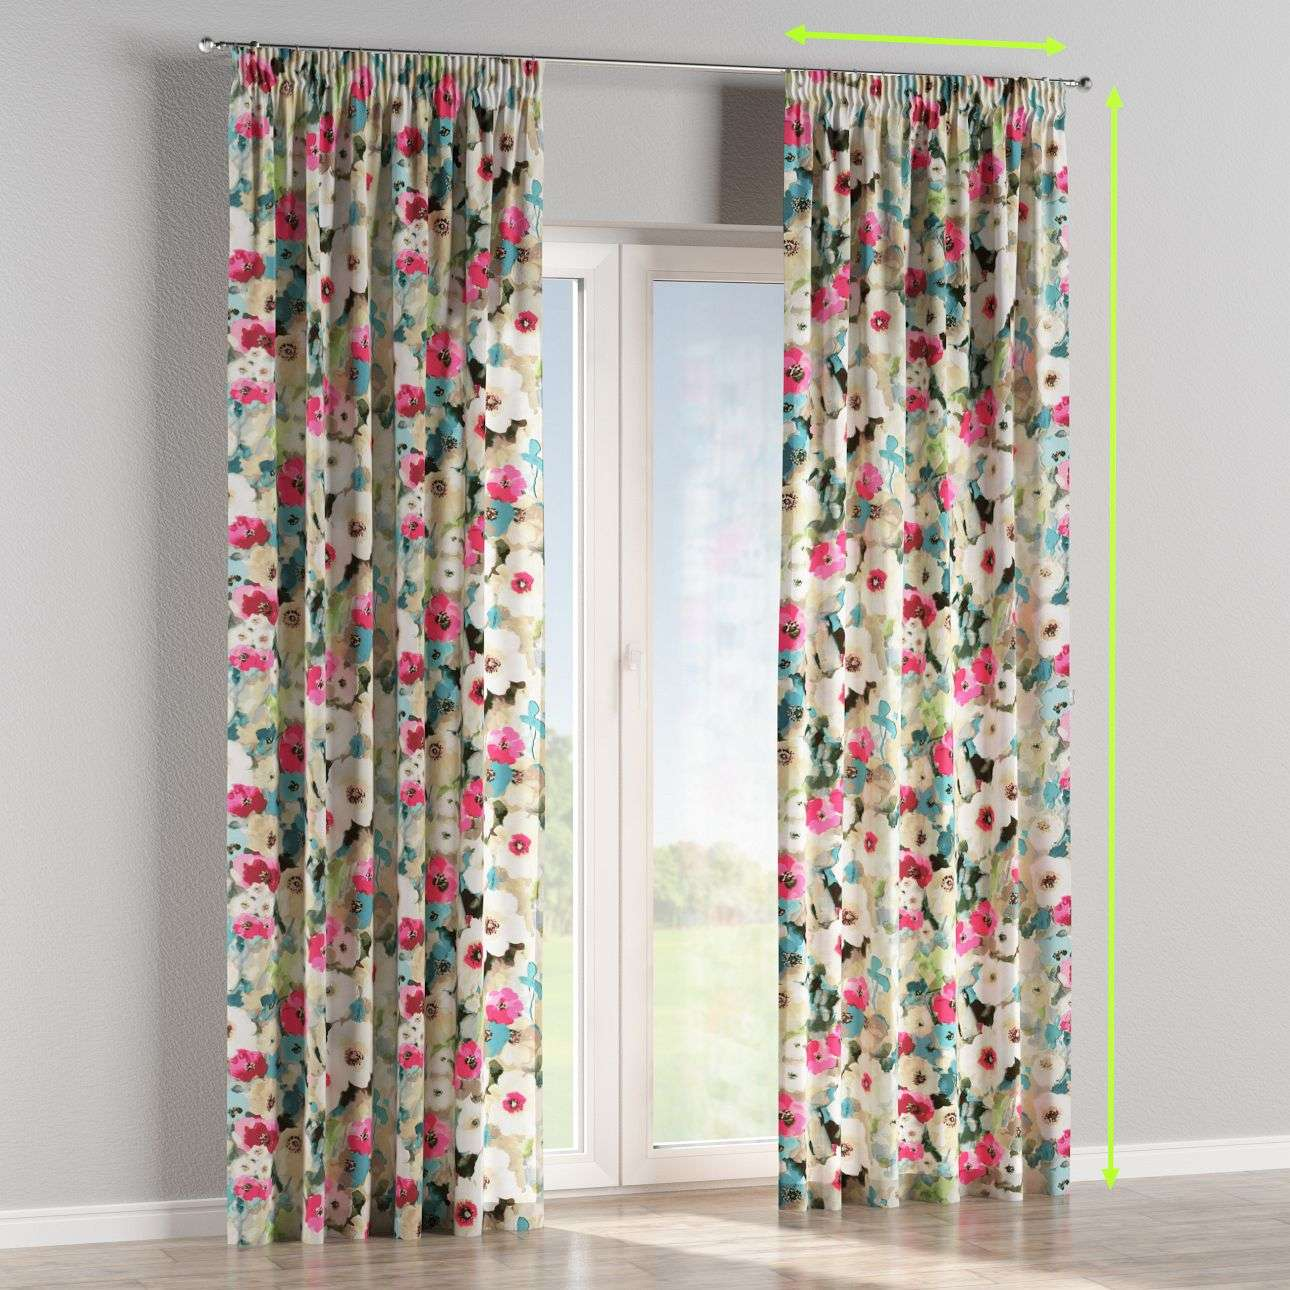 Pencil pleat curtain in collection Monet, fabric: 140-08